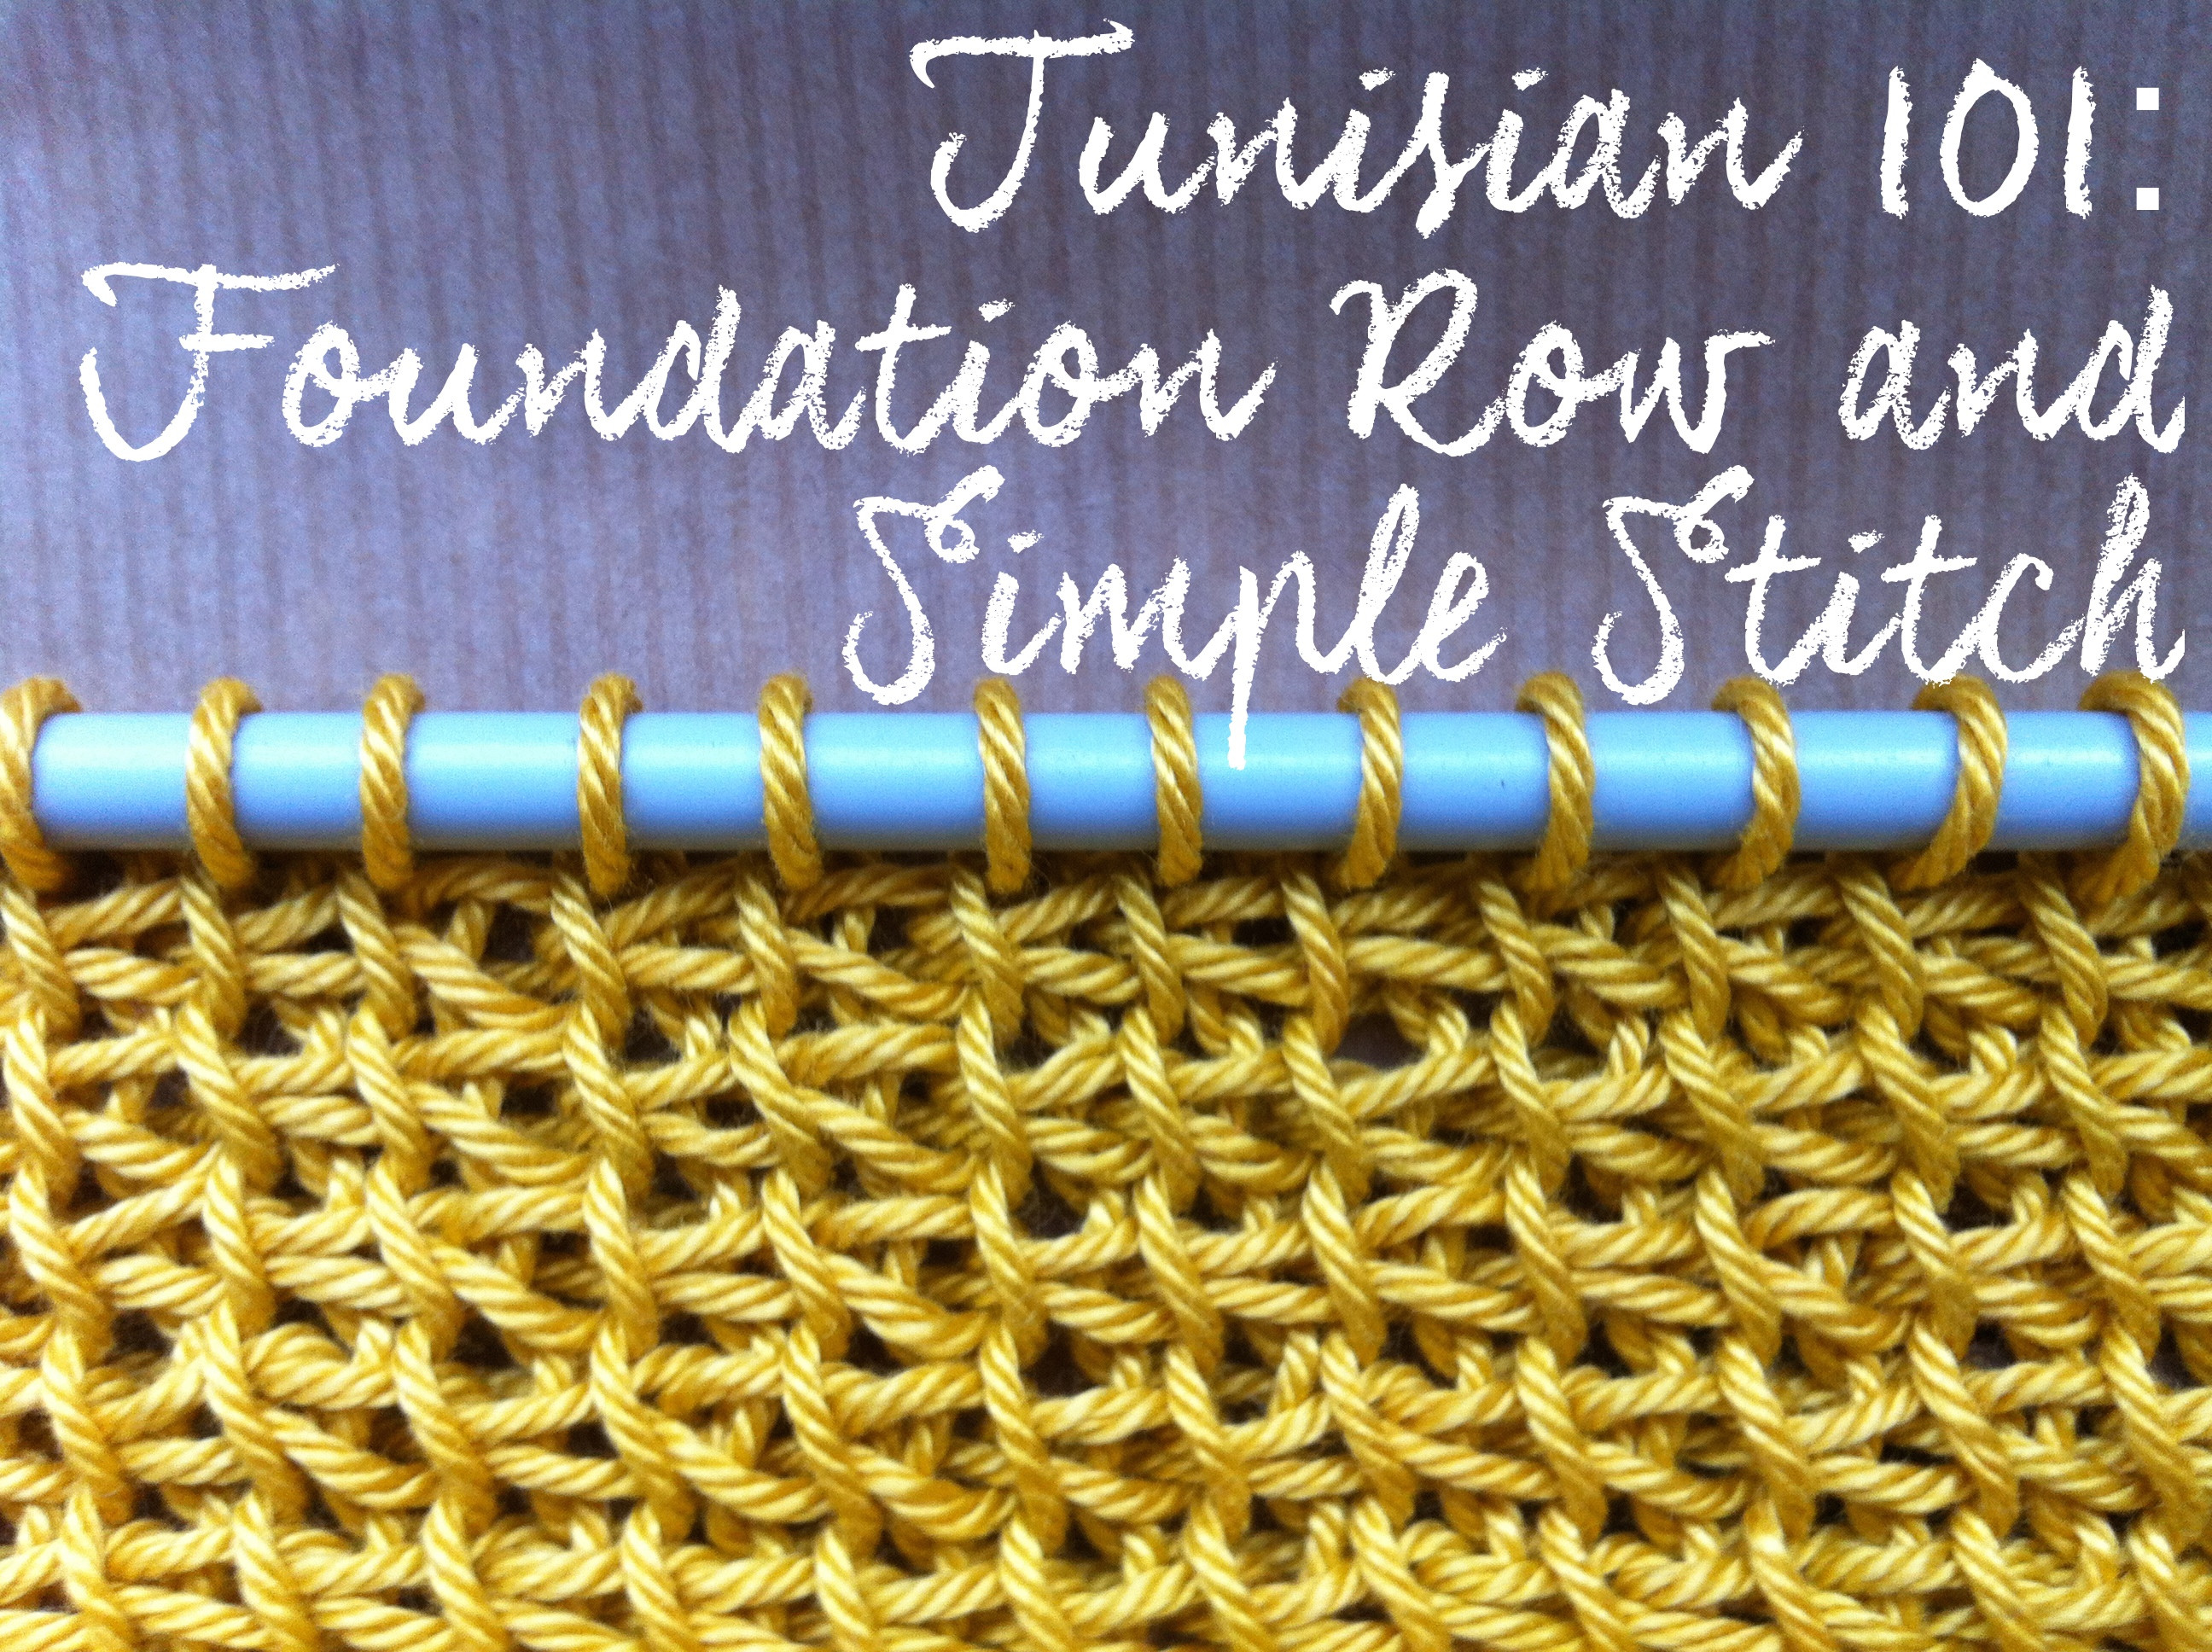 Tunisian Crochet Stitches Beautiful Tunisian Crochet 101 Foundation Row and Simple Stitch Of Wonderful 41 Pics Tunisian Crochet Stitches